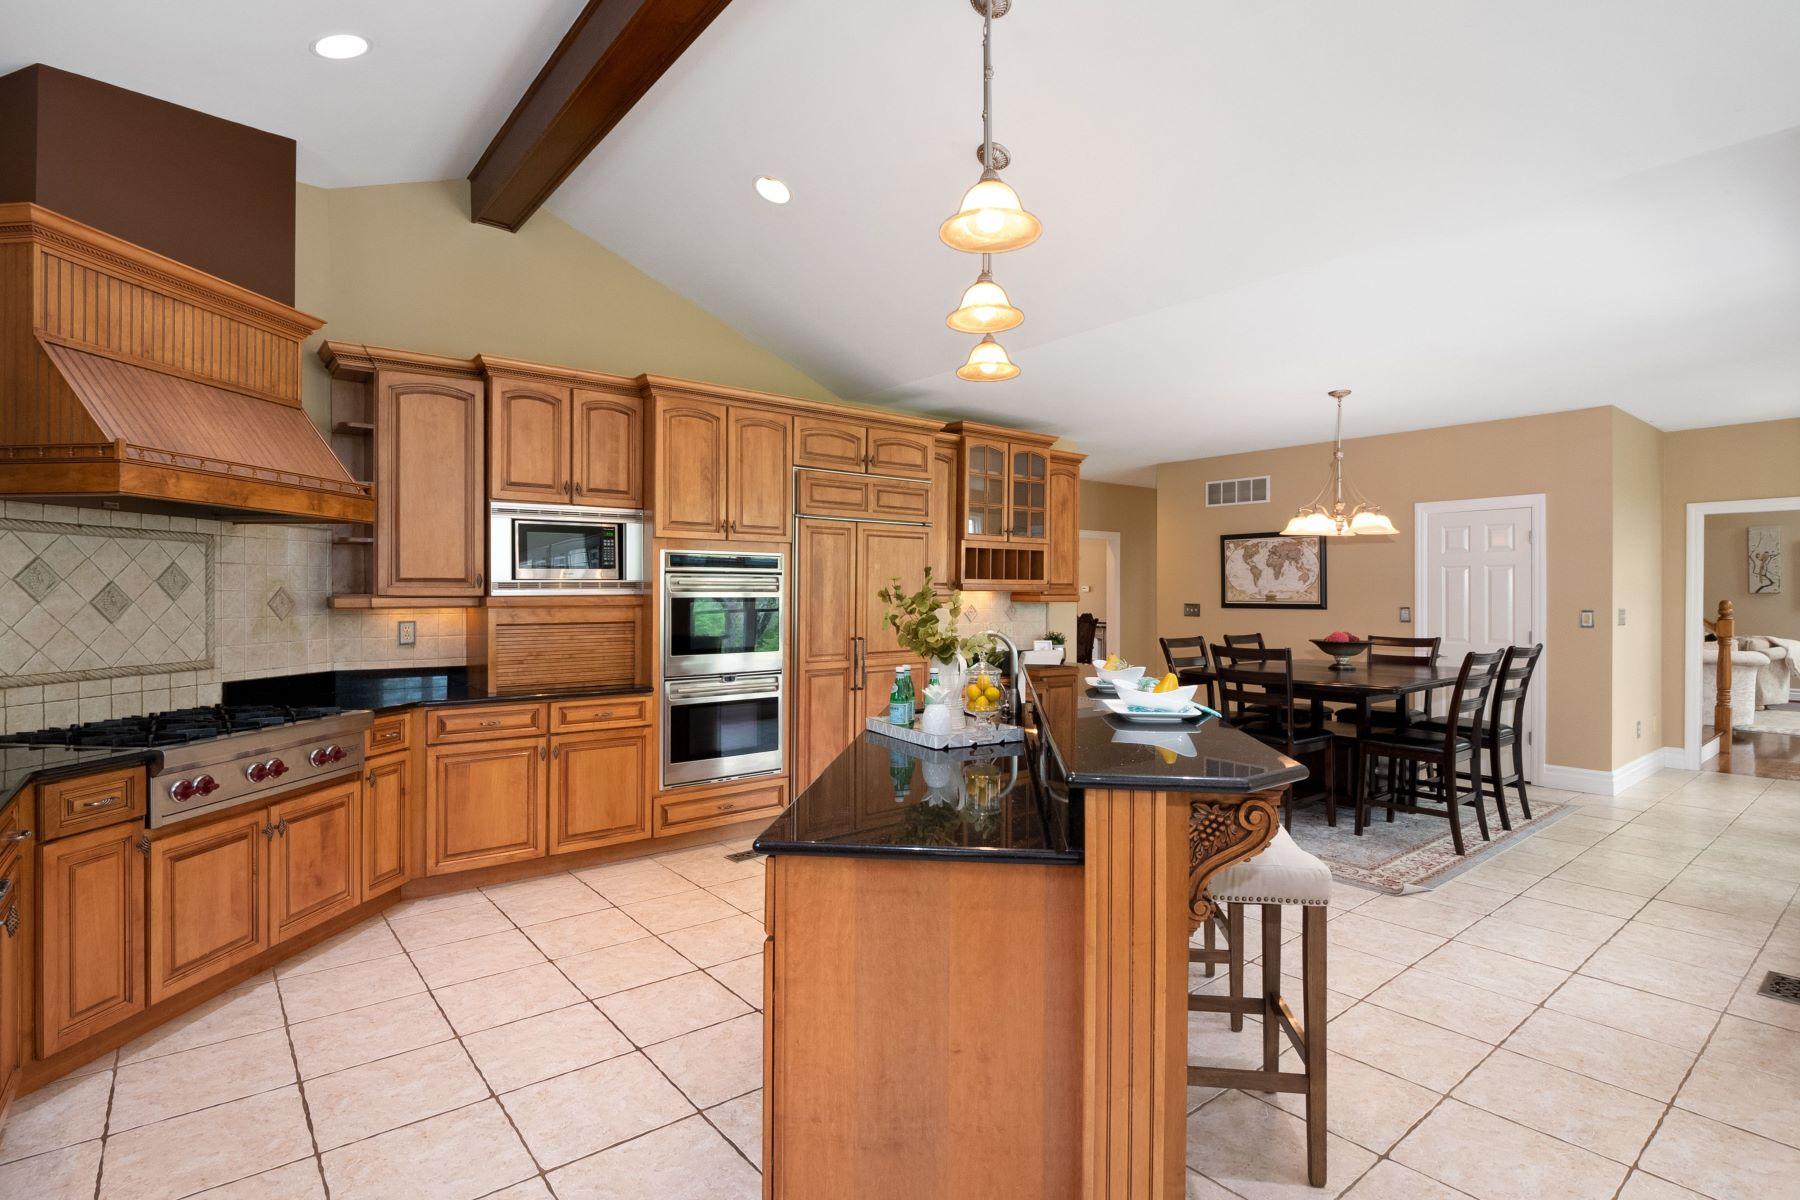 Additional photo for property listing at Stunning Executive Custom Home on 1.25 Acres 9 Ladue Meadows Creve Coeur, Missouri 63141 United States